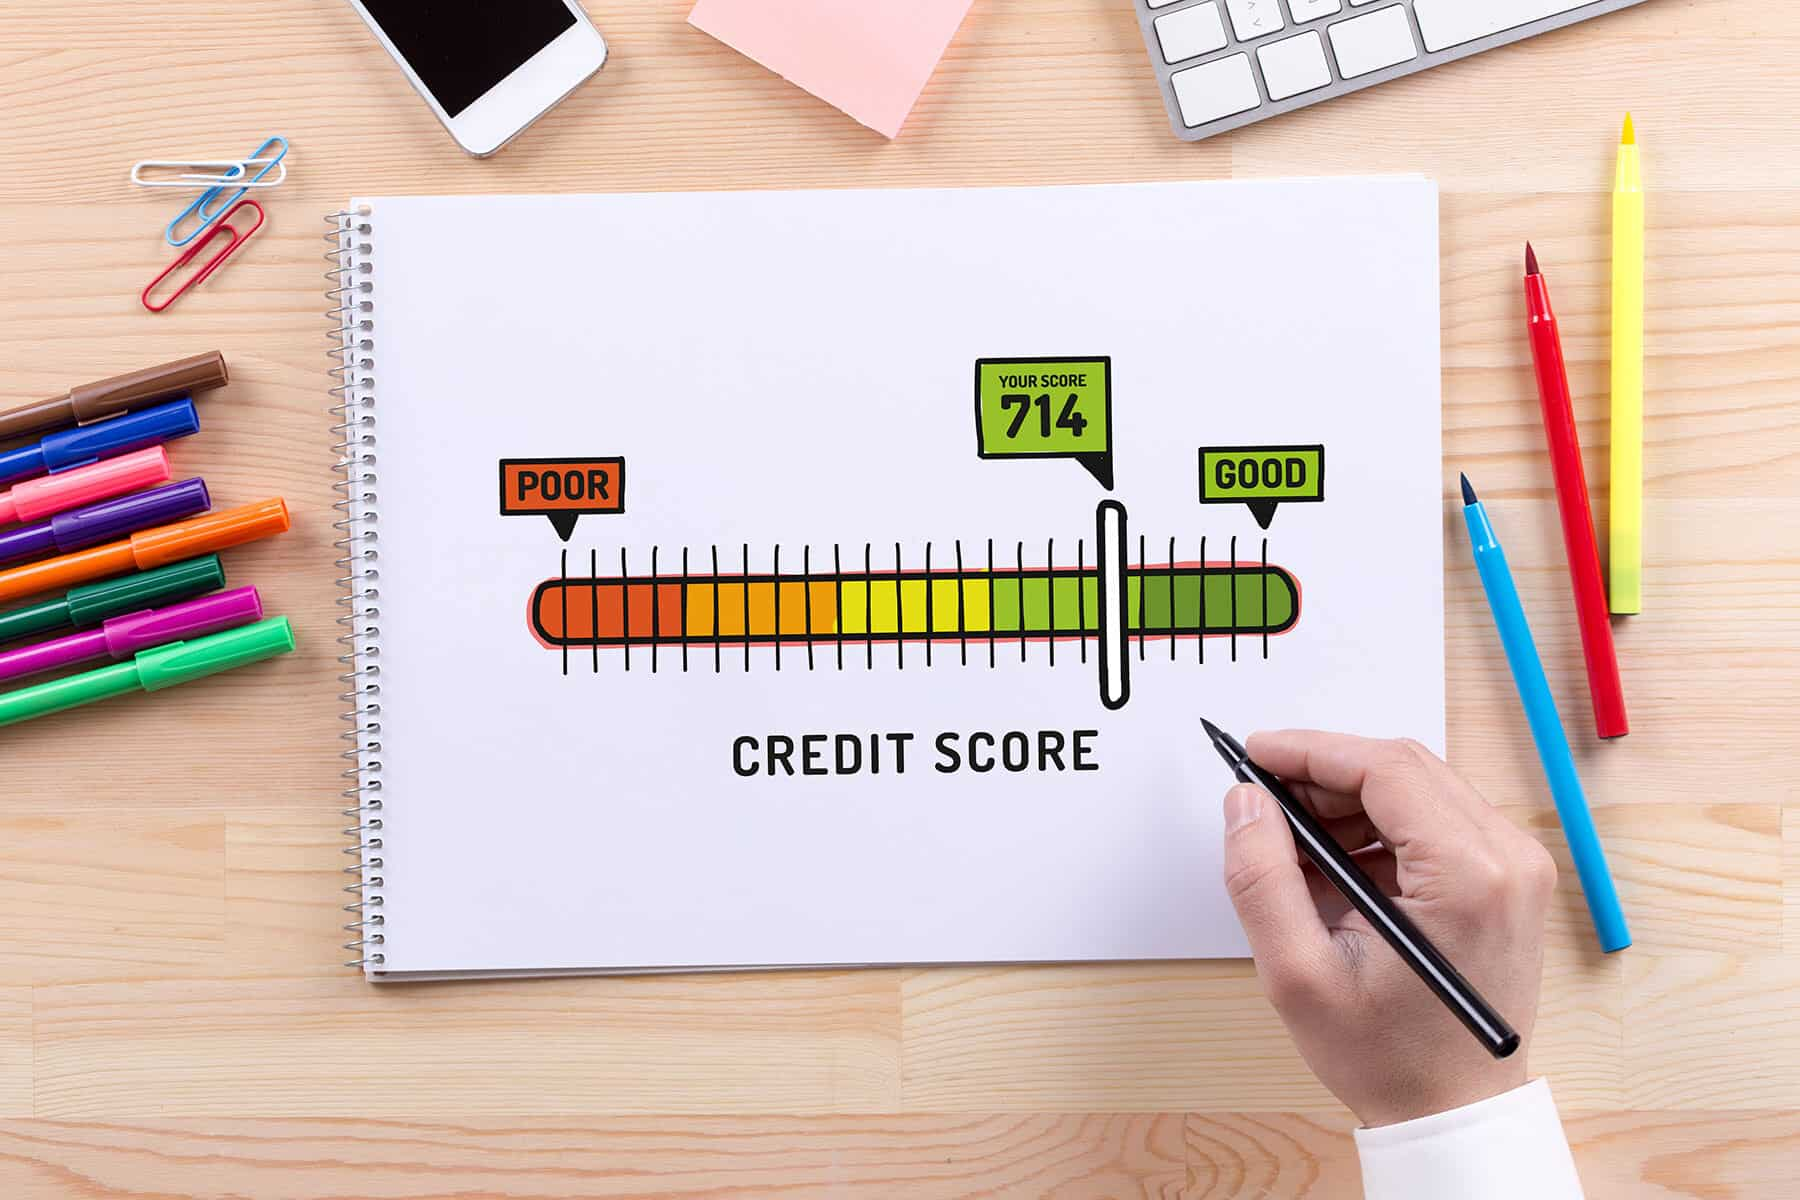 credit score changes; drawing of credit score scale on a sketchpad